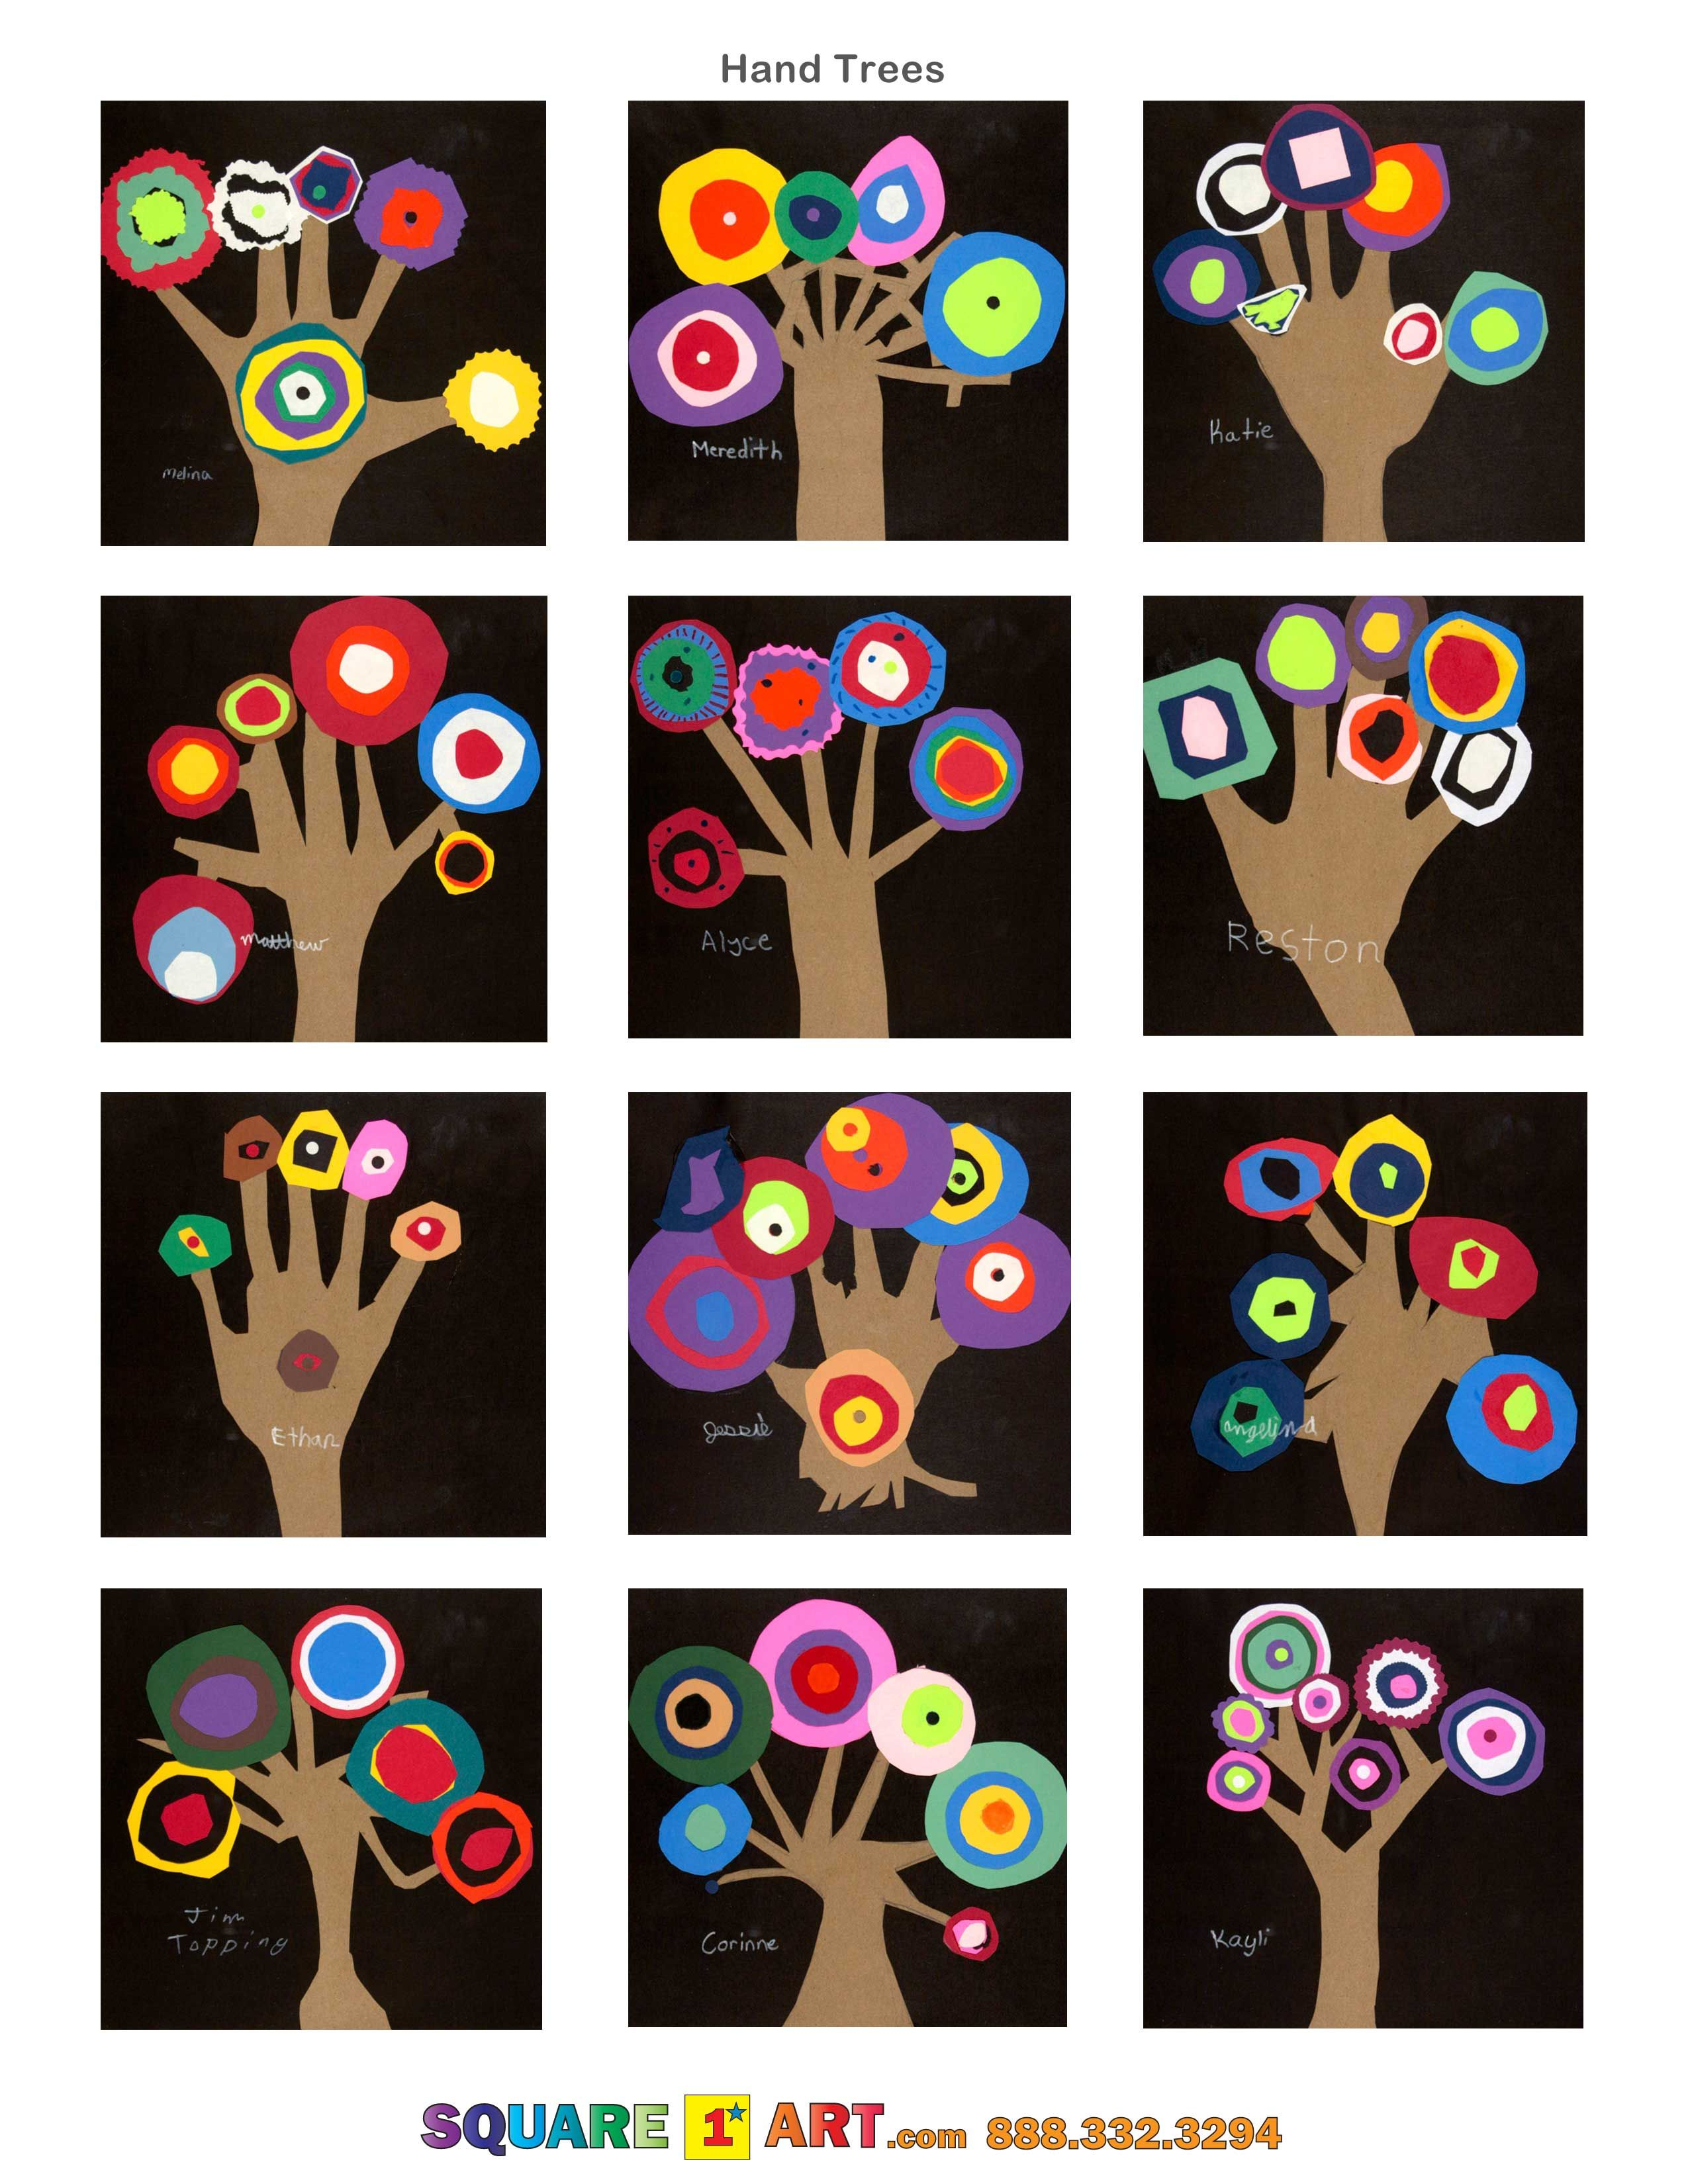 up to grade 2 ray of sun shine art easy art projects for 2nd graders